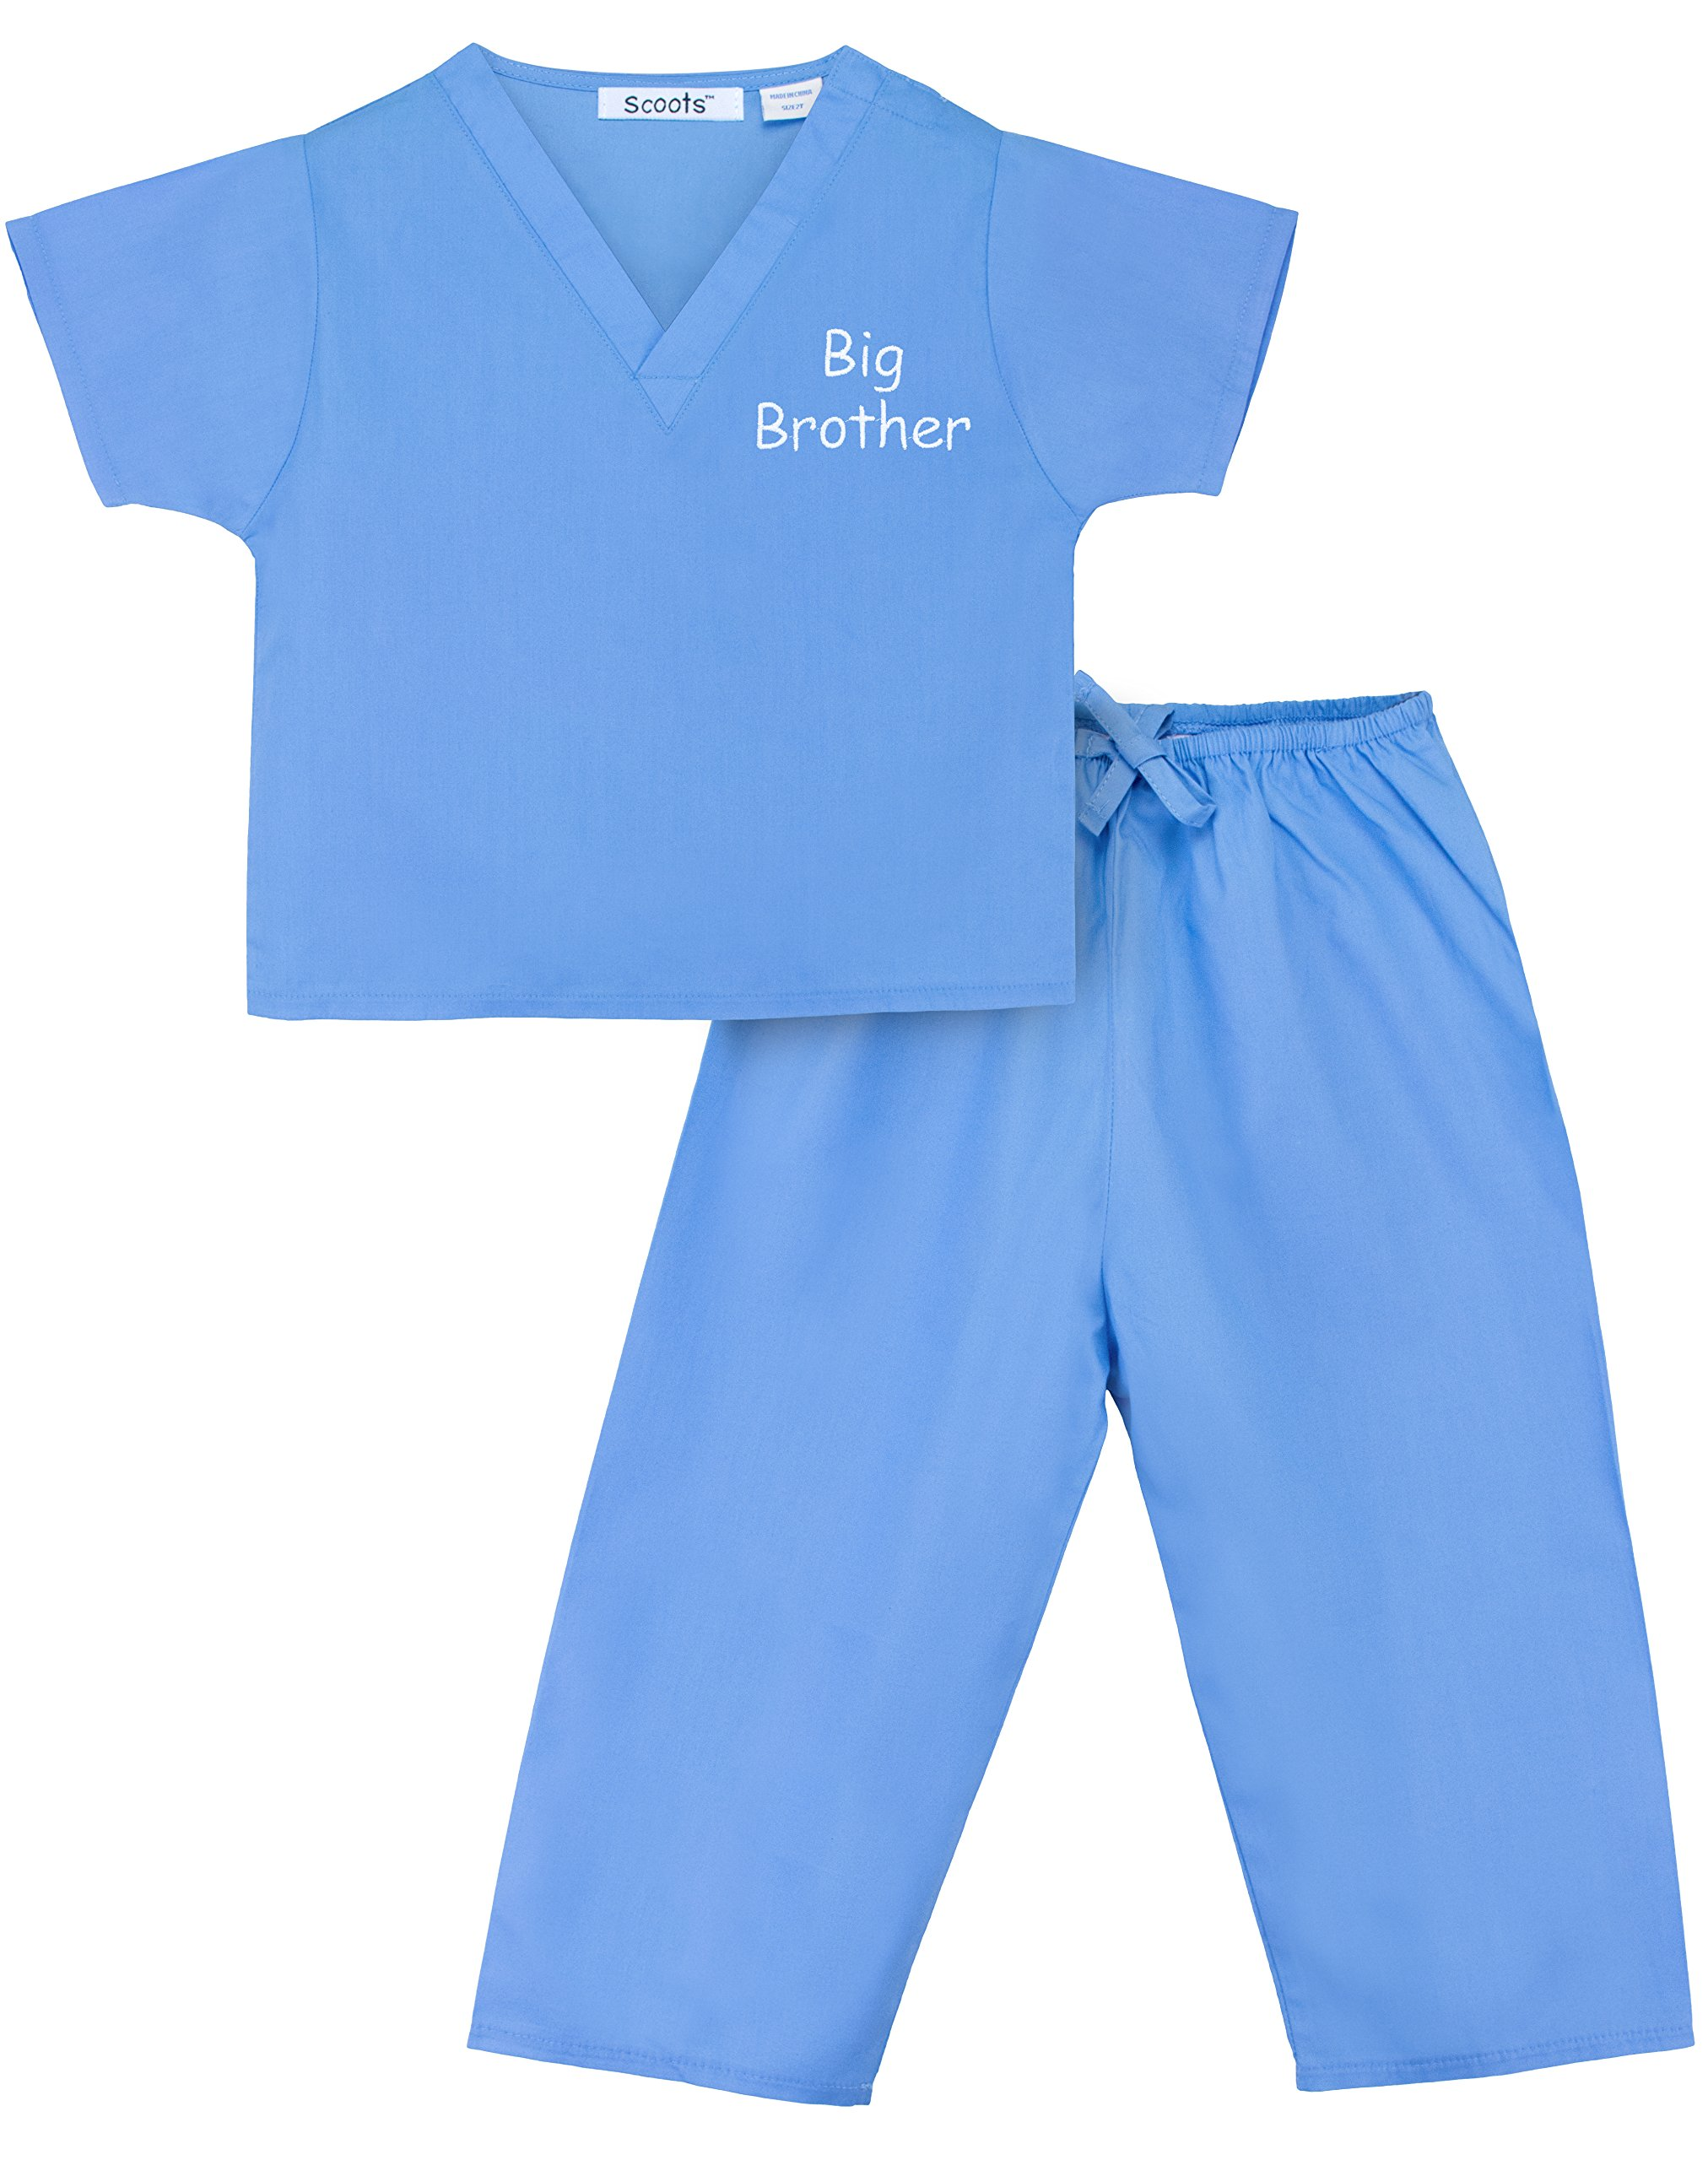 Scoots Toddler Scrubs Big Brother, Blue, Size 18 Months